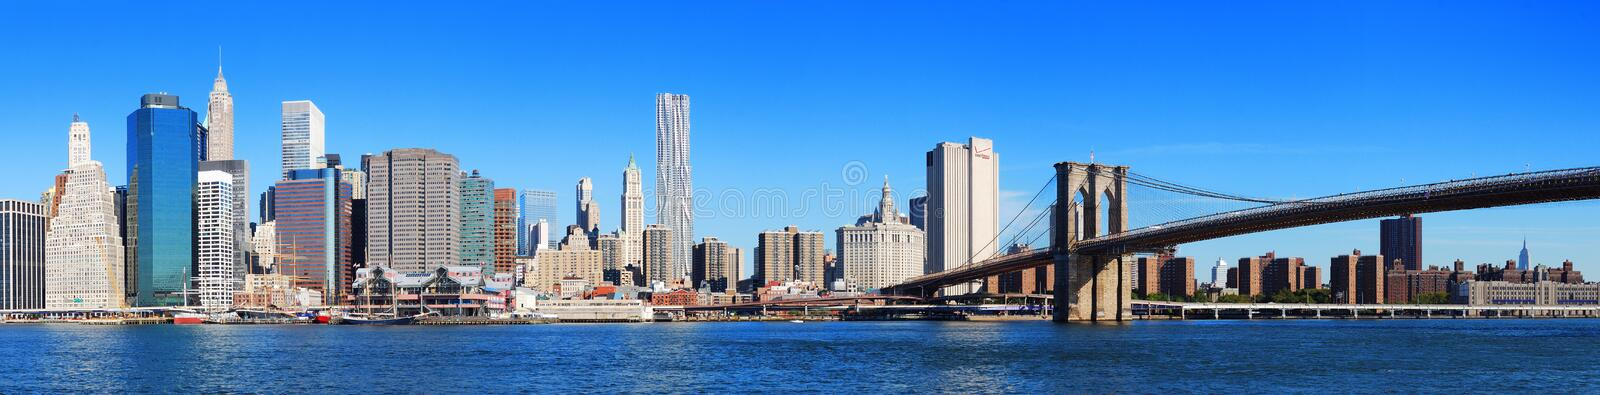 New York City Manhattan skyline panorama royalty free stock photo